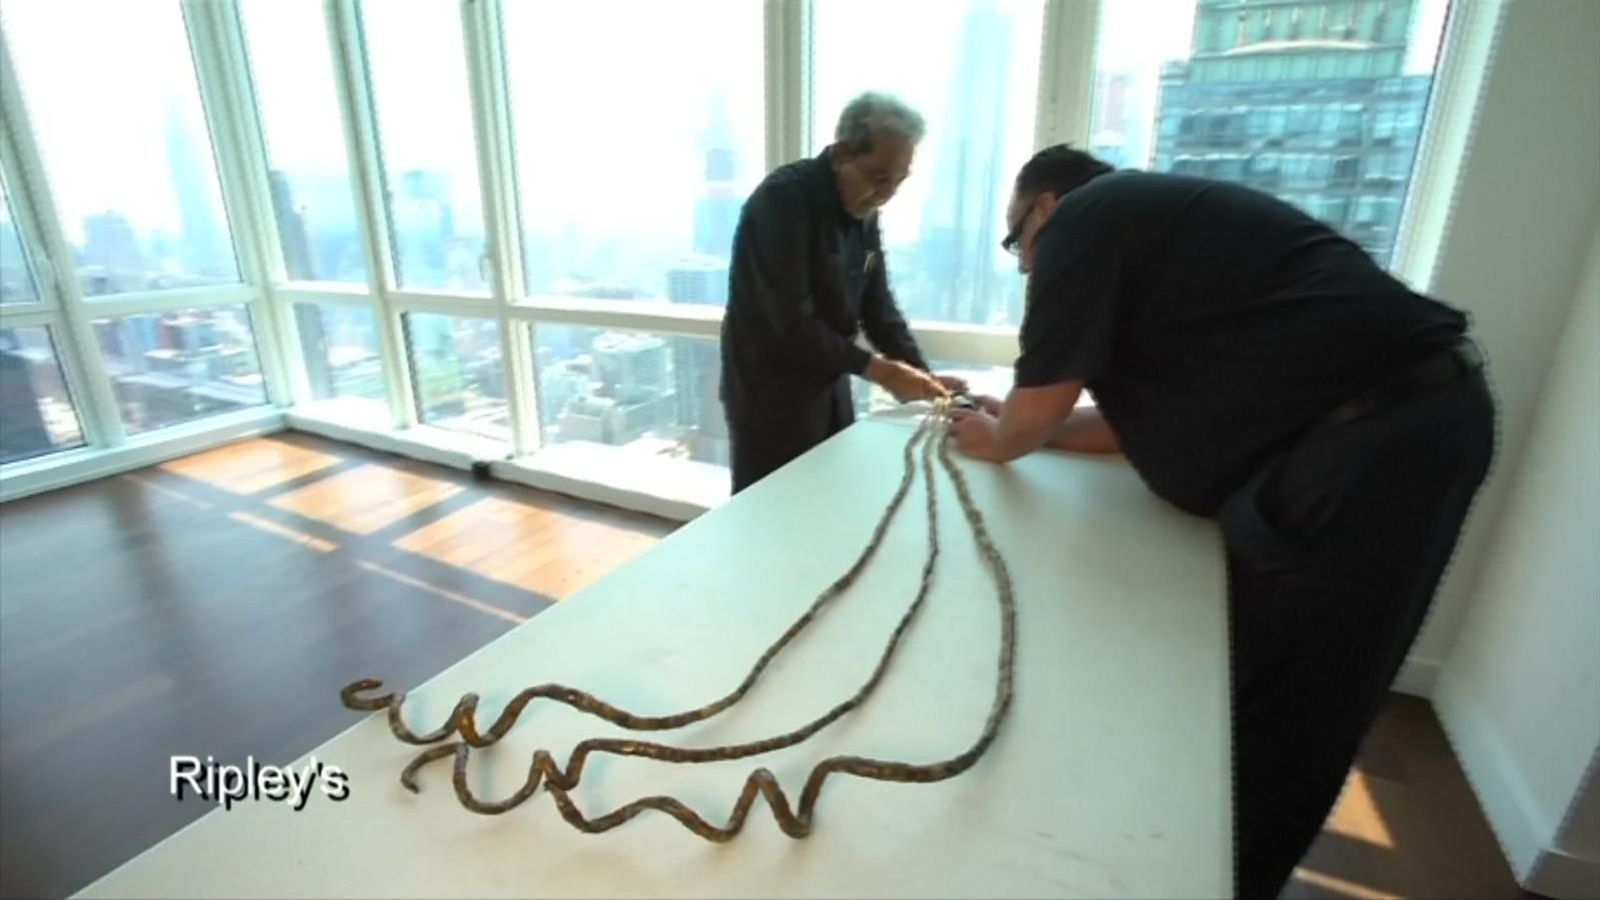 man with world s longest fingernails gets them cut after 66 years